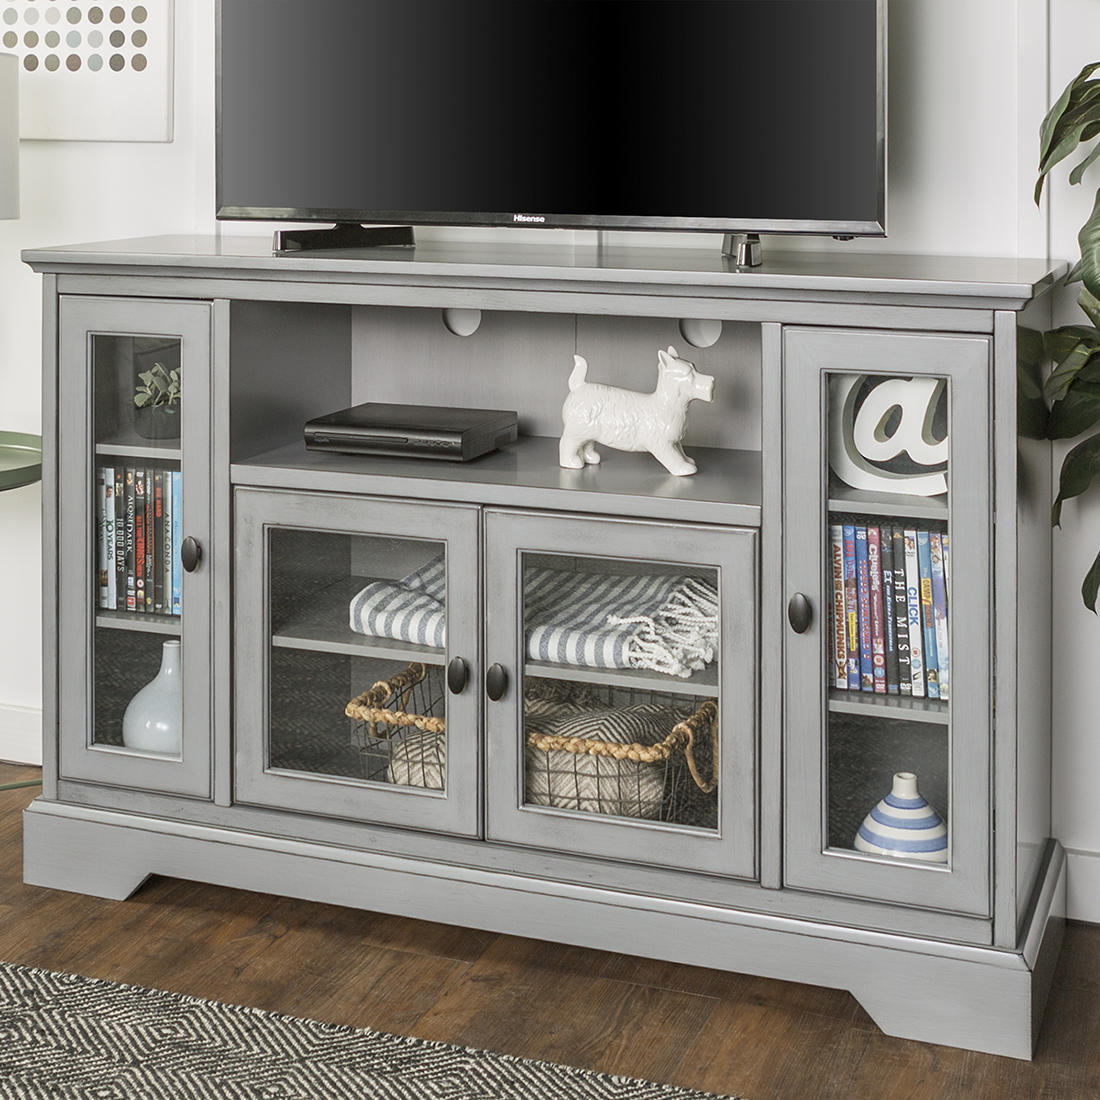 W Trends Highboy 52 Wood Tv Media Stand With Storage For Tvs Up To 55 Aged Gray